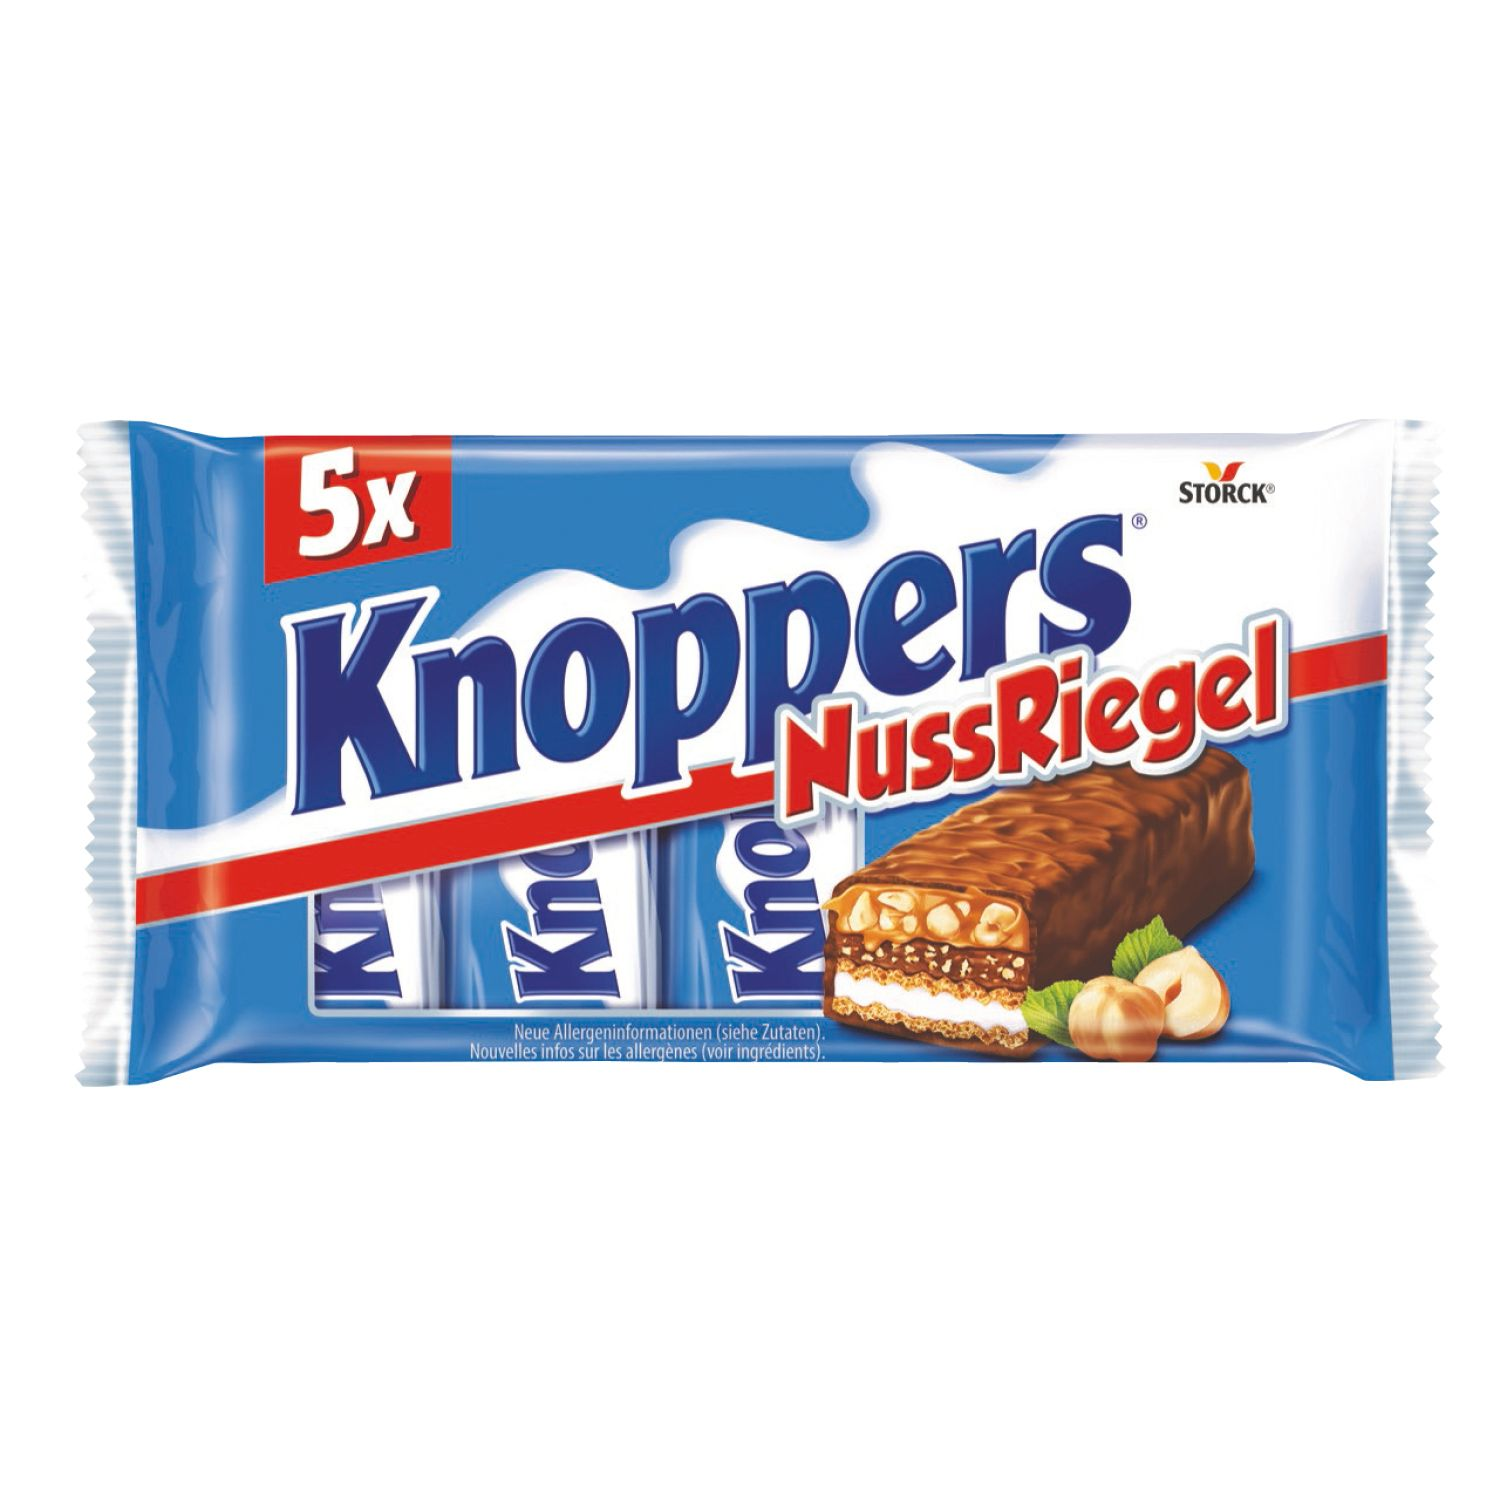 5x Knoppers NussRiegel 200g